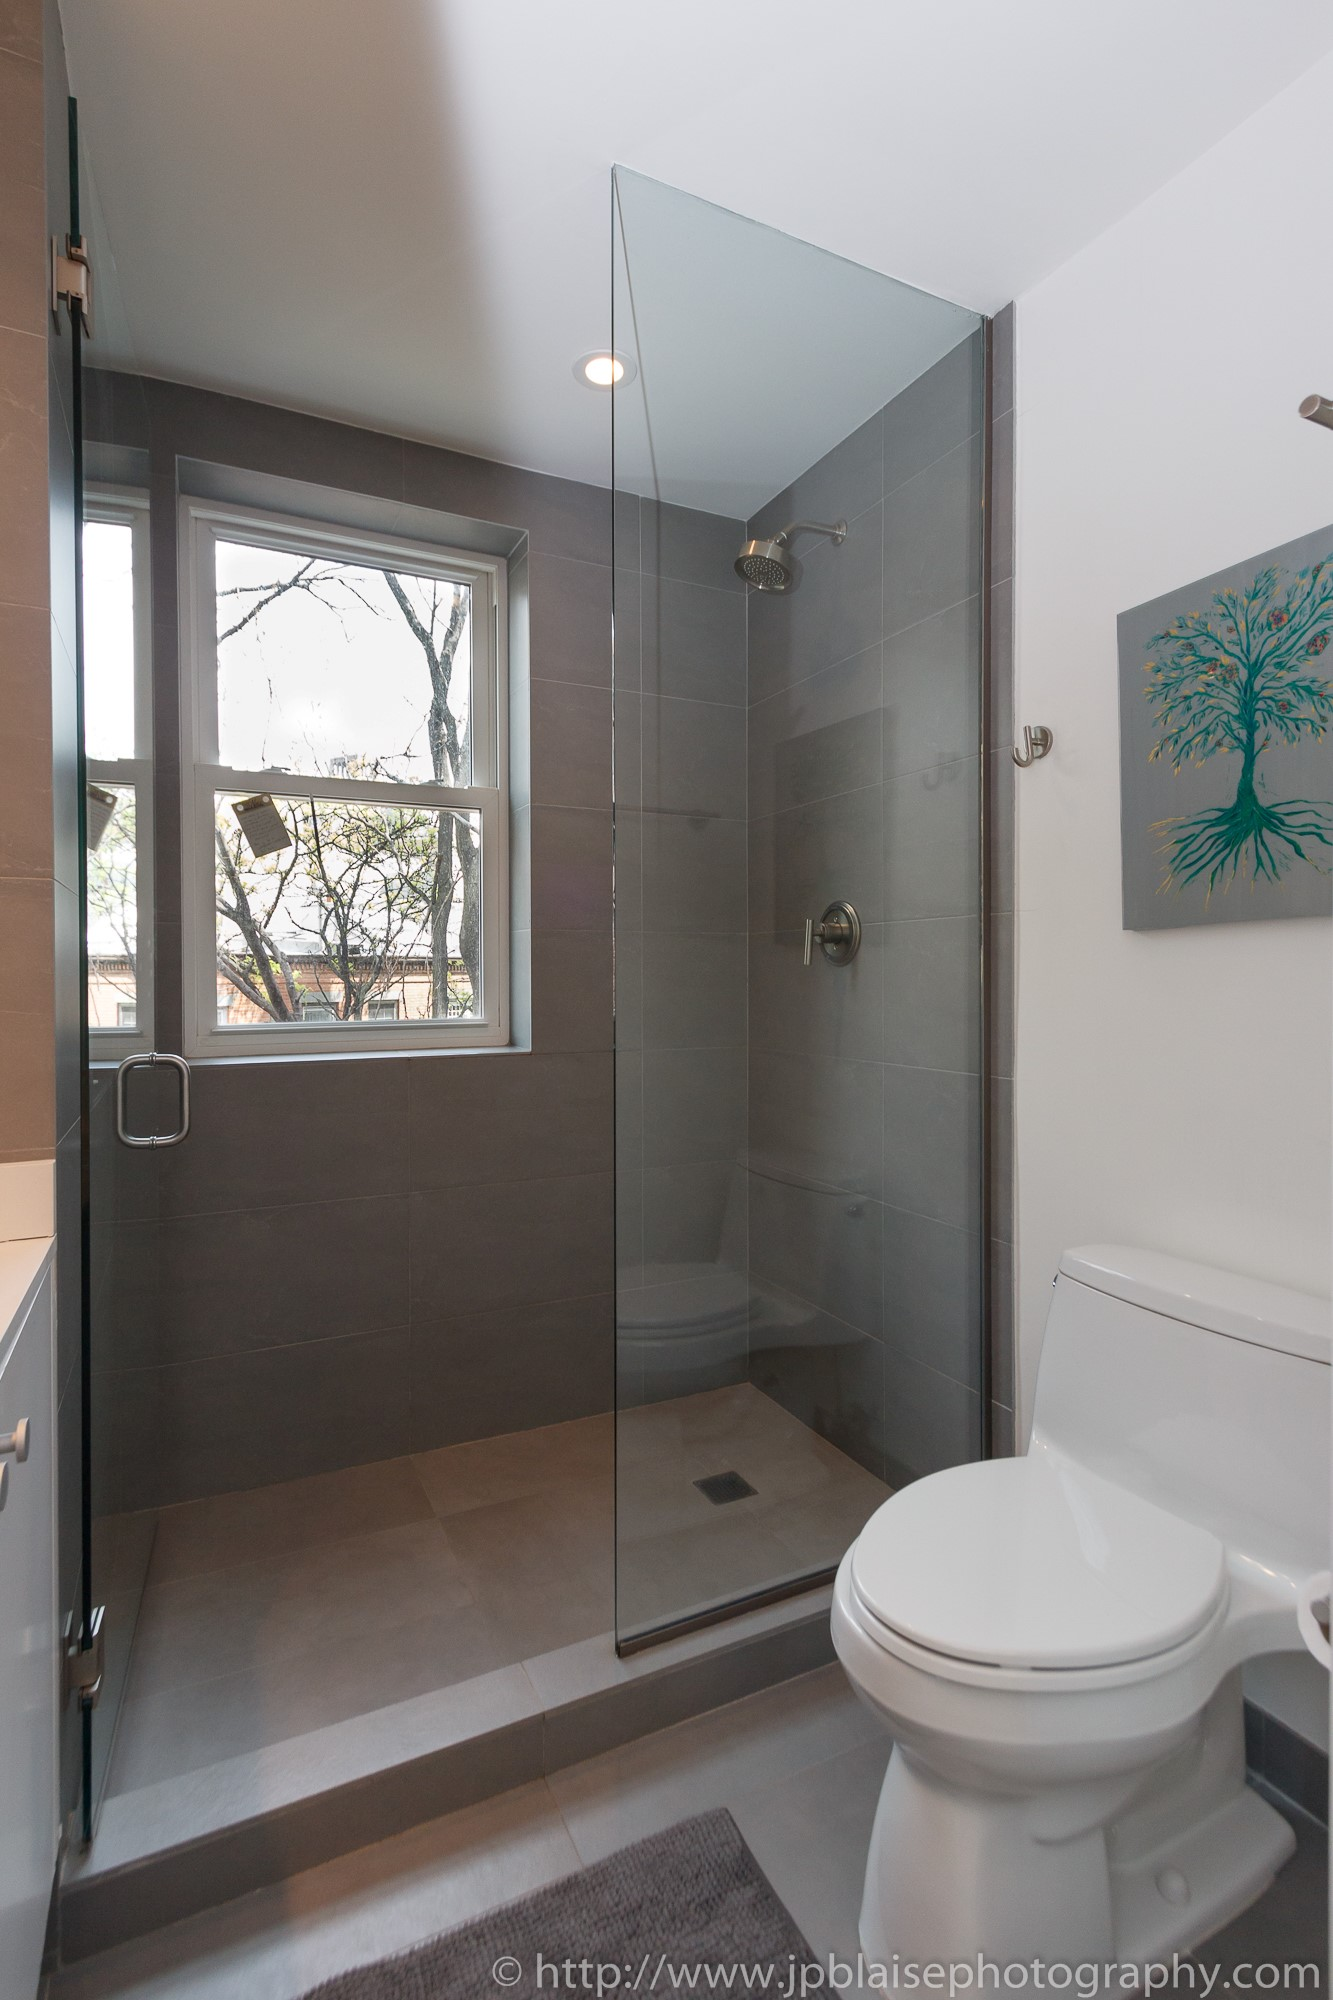 Real estate photographer work west village one bedroom apartment bathroom